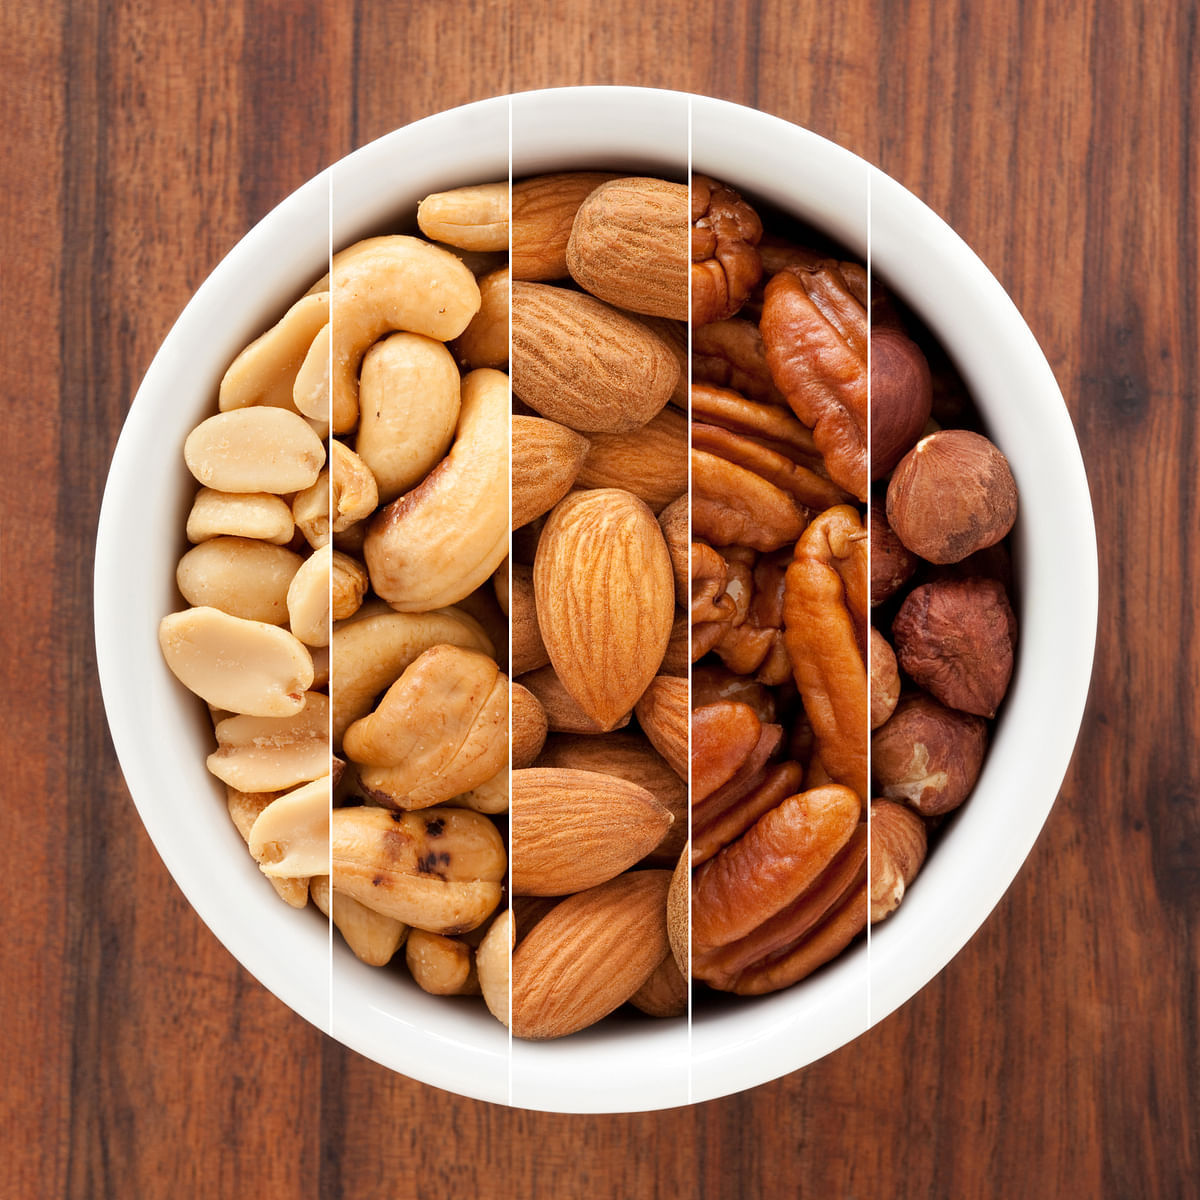 Nuts are rich in Omega 3 fatty acids that help the brain building power.